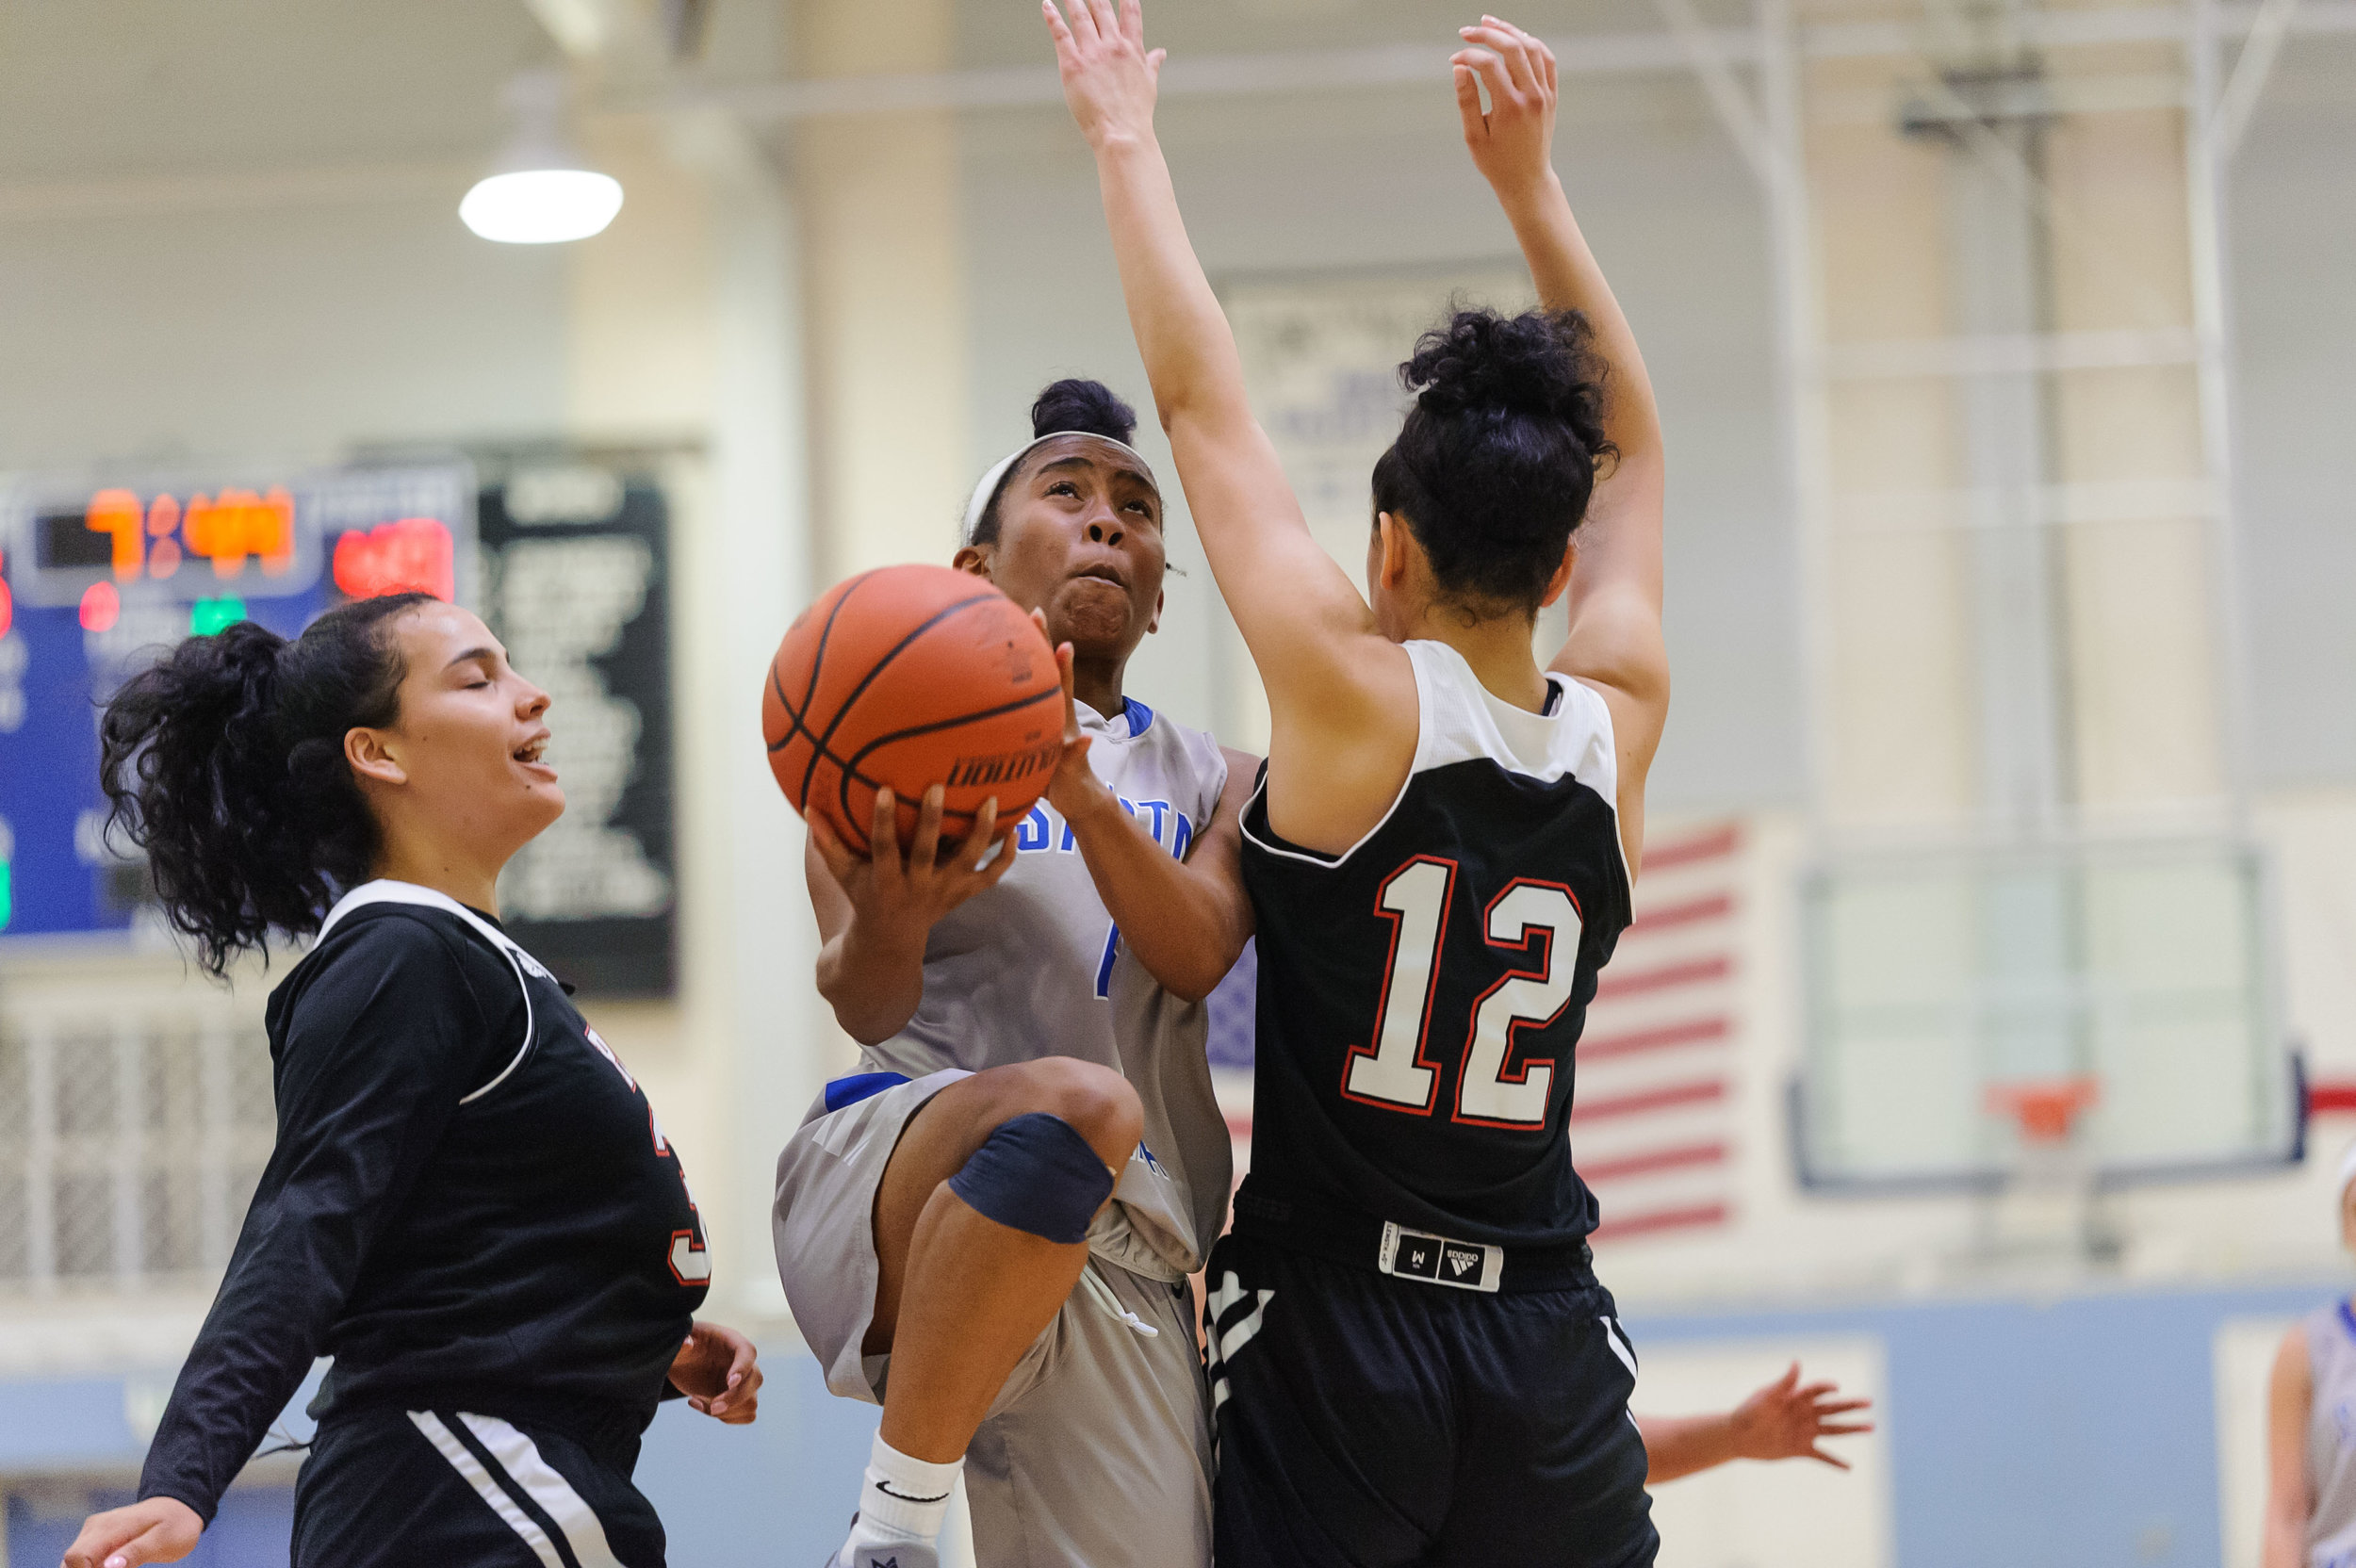 Guard Lisa Hall (4,Middle) of Santa Monica College goes up for a layup while contested by Adriana Penate (12,Right) of Pierce College. The Santa Monica College Corsairs win their final game of the season 76-53 against the Pierce College Brahmas. The game was held at the SMC Pavilion at the Santa Monica College Main Campus in Santa Monica, Calif.. February 17, 2018. (Photo by: Justin Han/Corsair Staff)